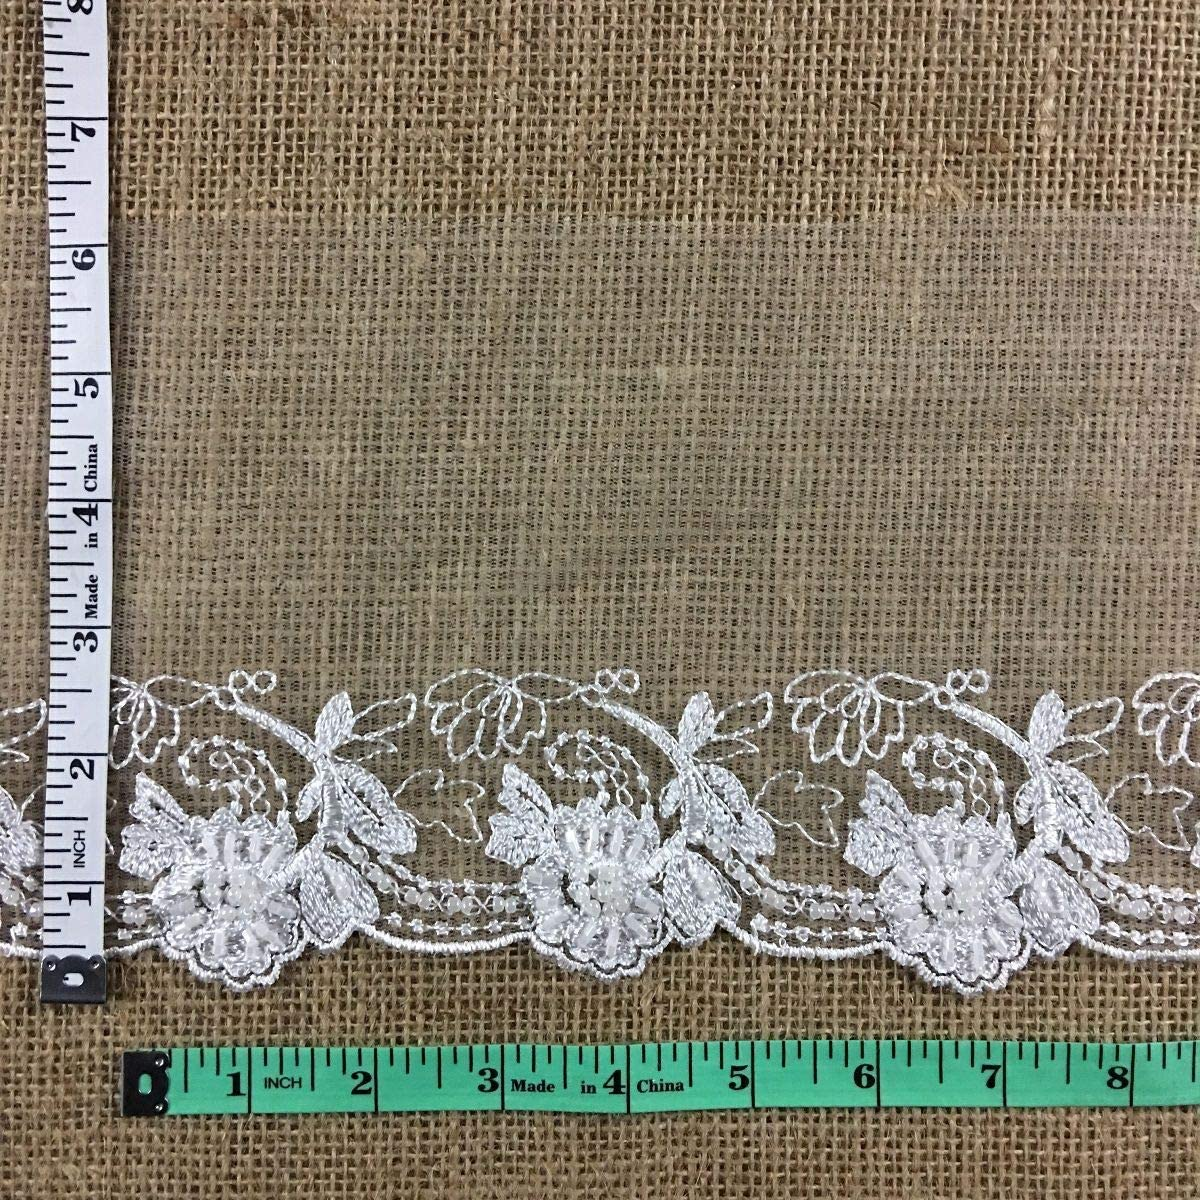 Bridal Lace Trim Alencon Embroidered Beaded Mesh Beautiful Floral, 3-6